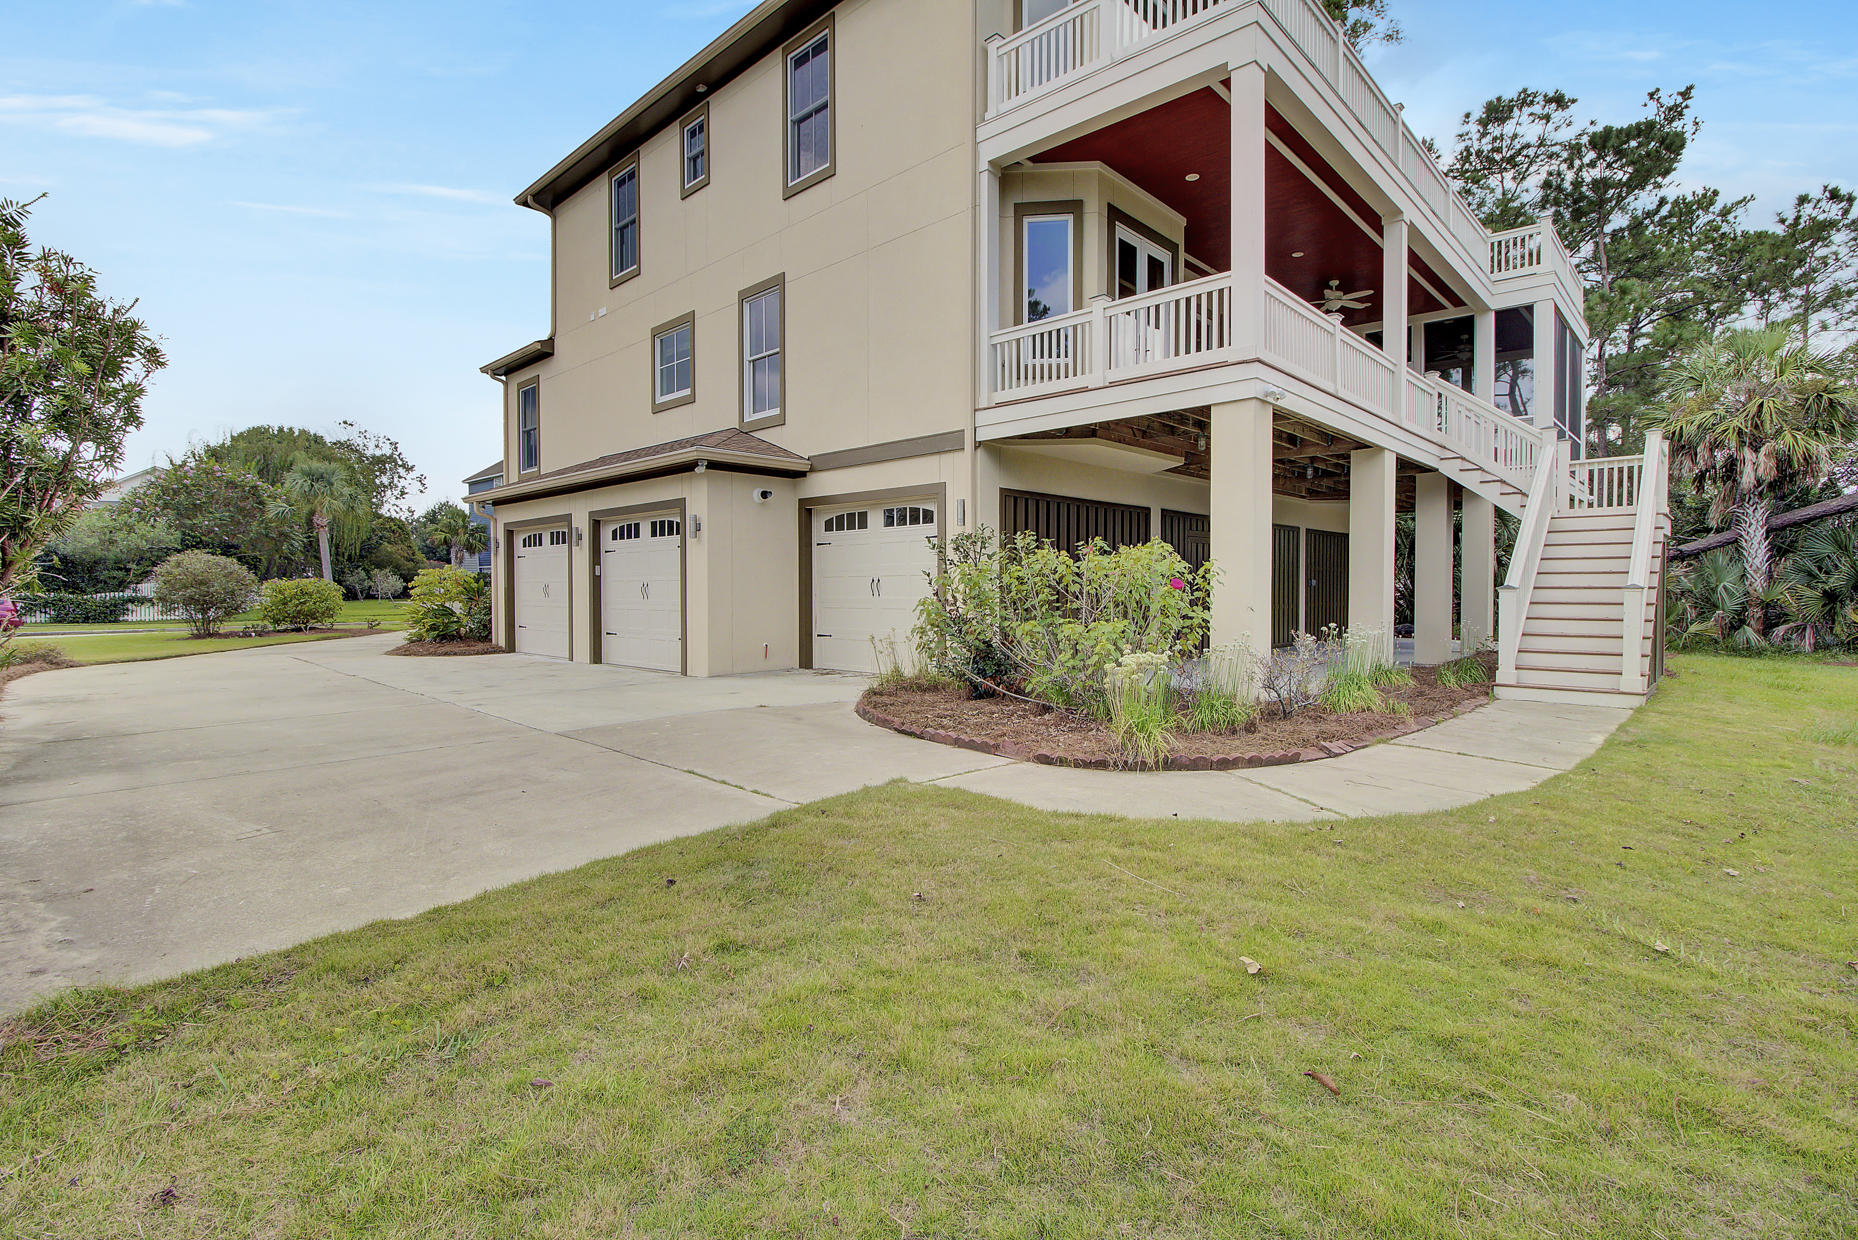 Rivertowne On The Wando Homes For Sale - 2219 Marsh, Mount Pleasant, SC - 12